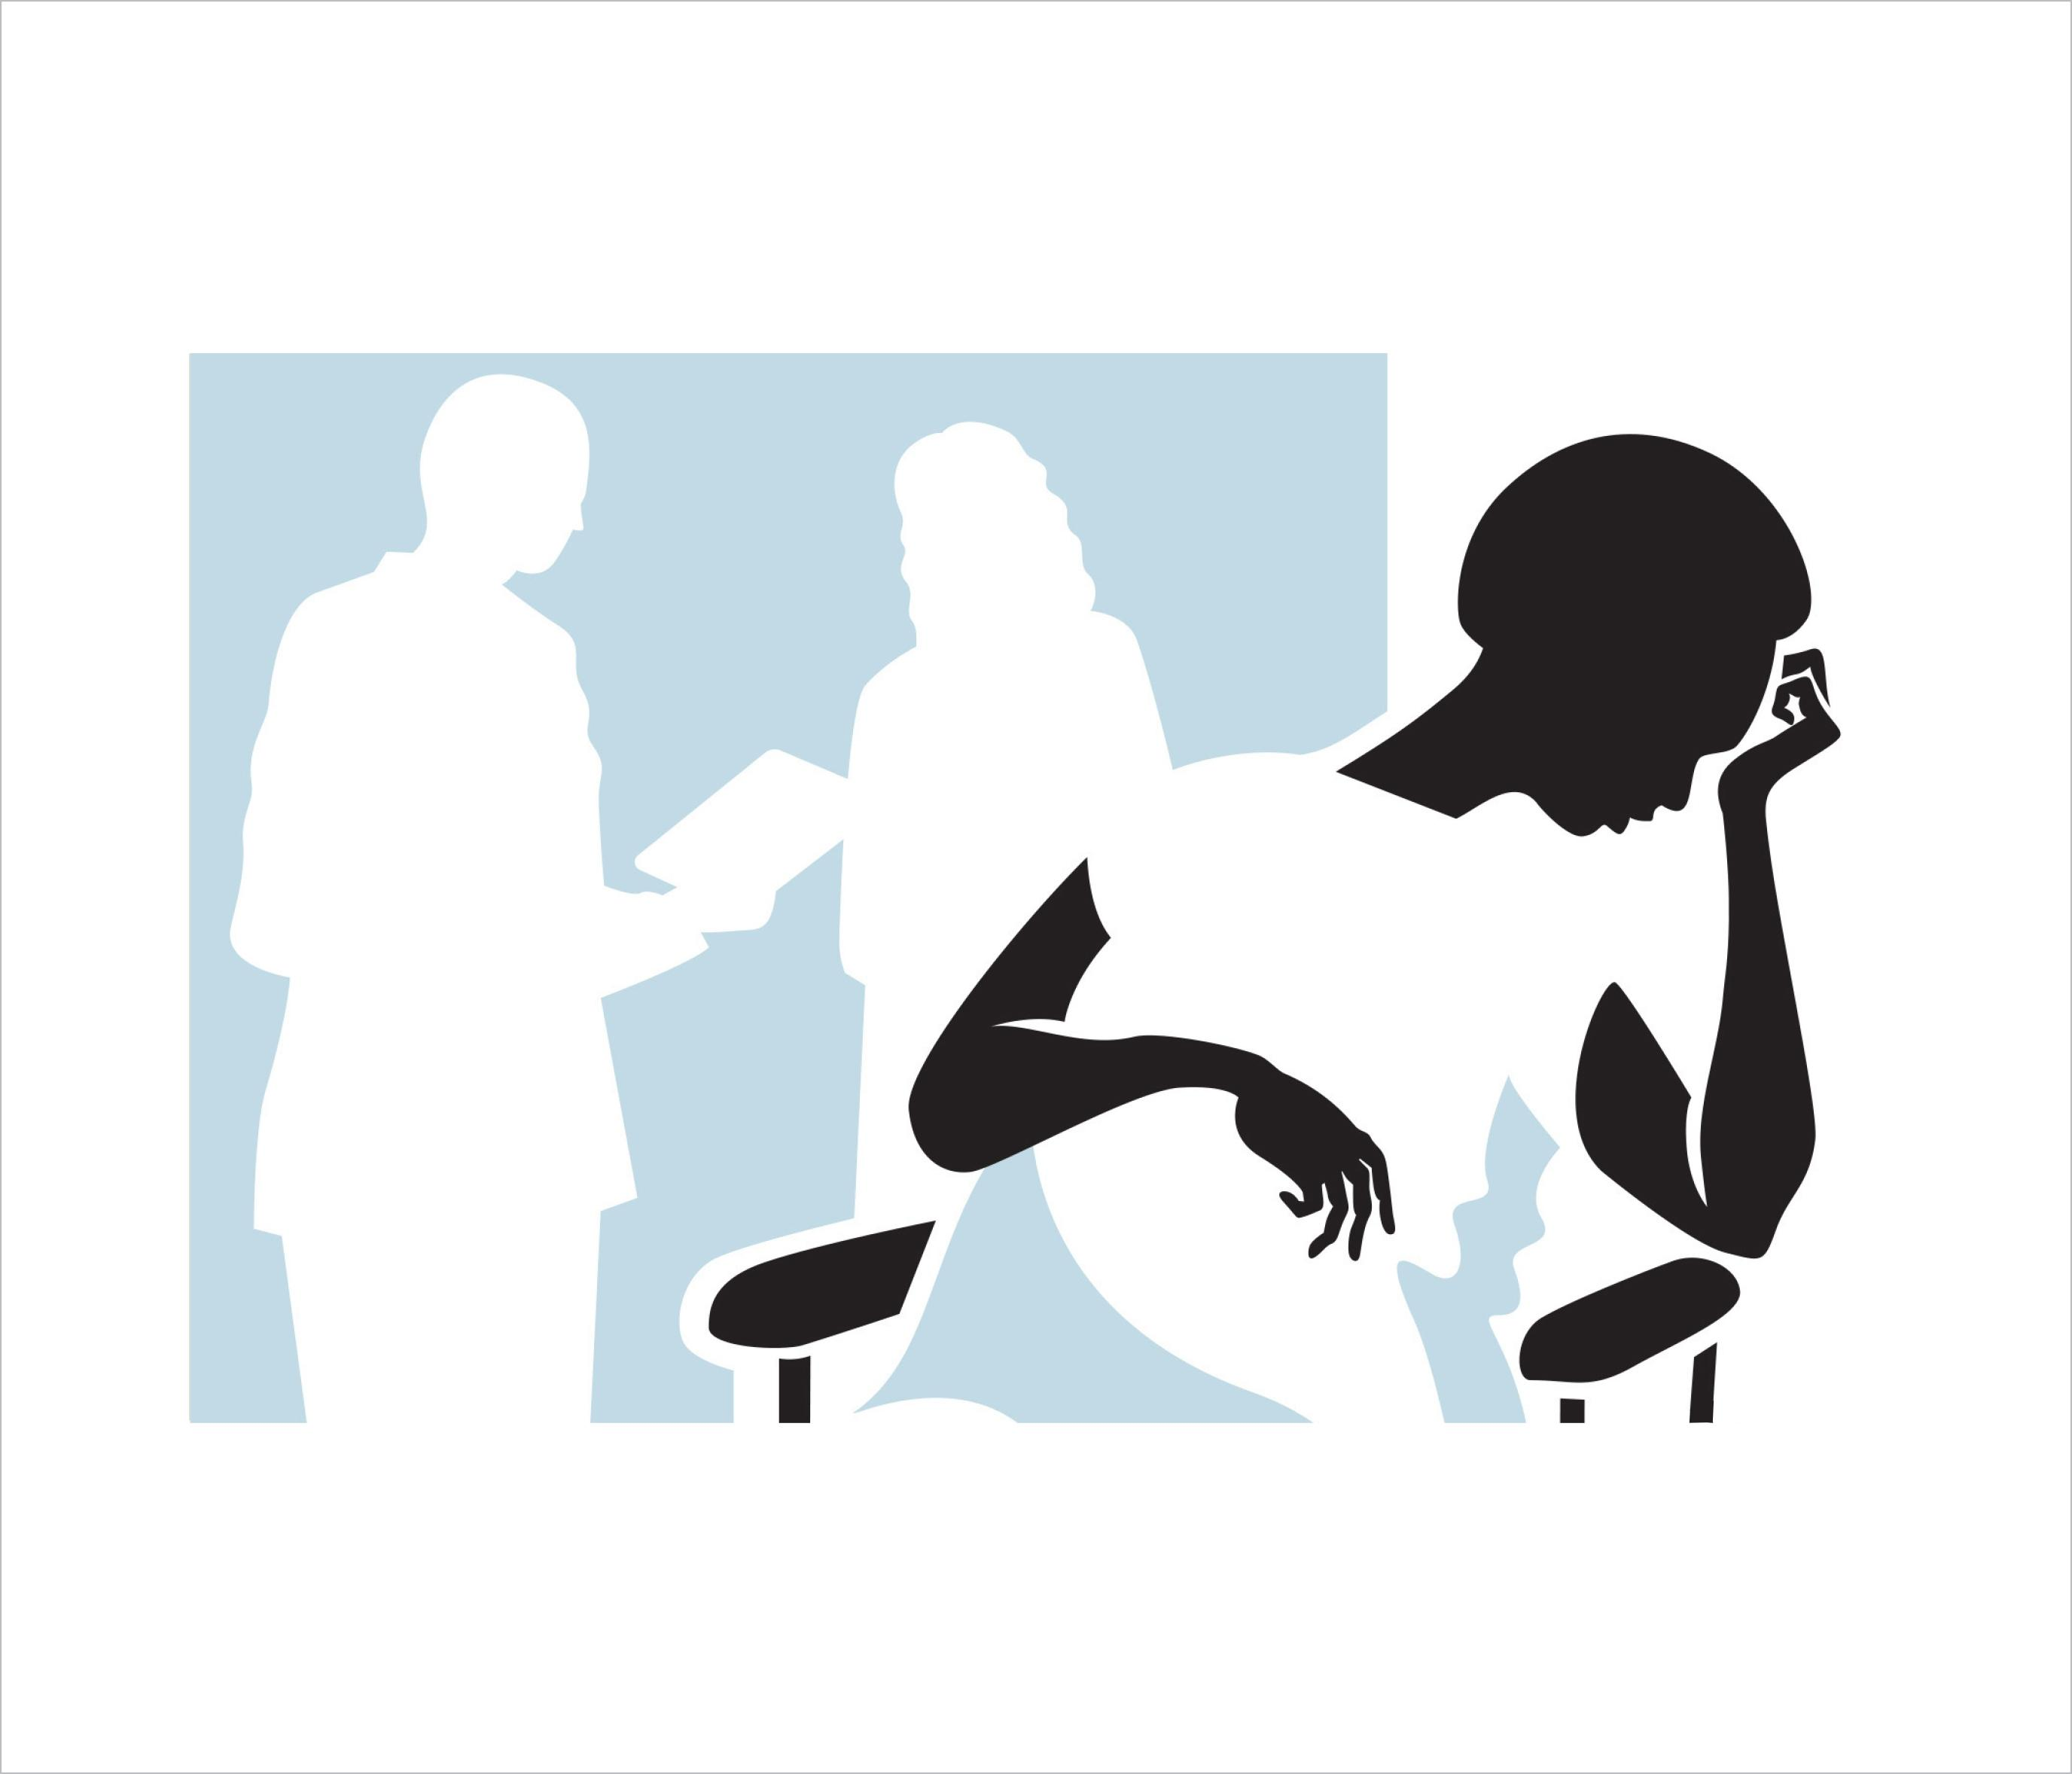 Clipart listening session with black americans graphic transparent library Pregnancy more perilous for black women in R.I. - News ... graphic transparent library